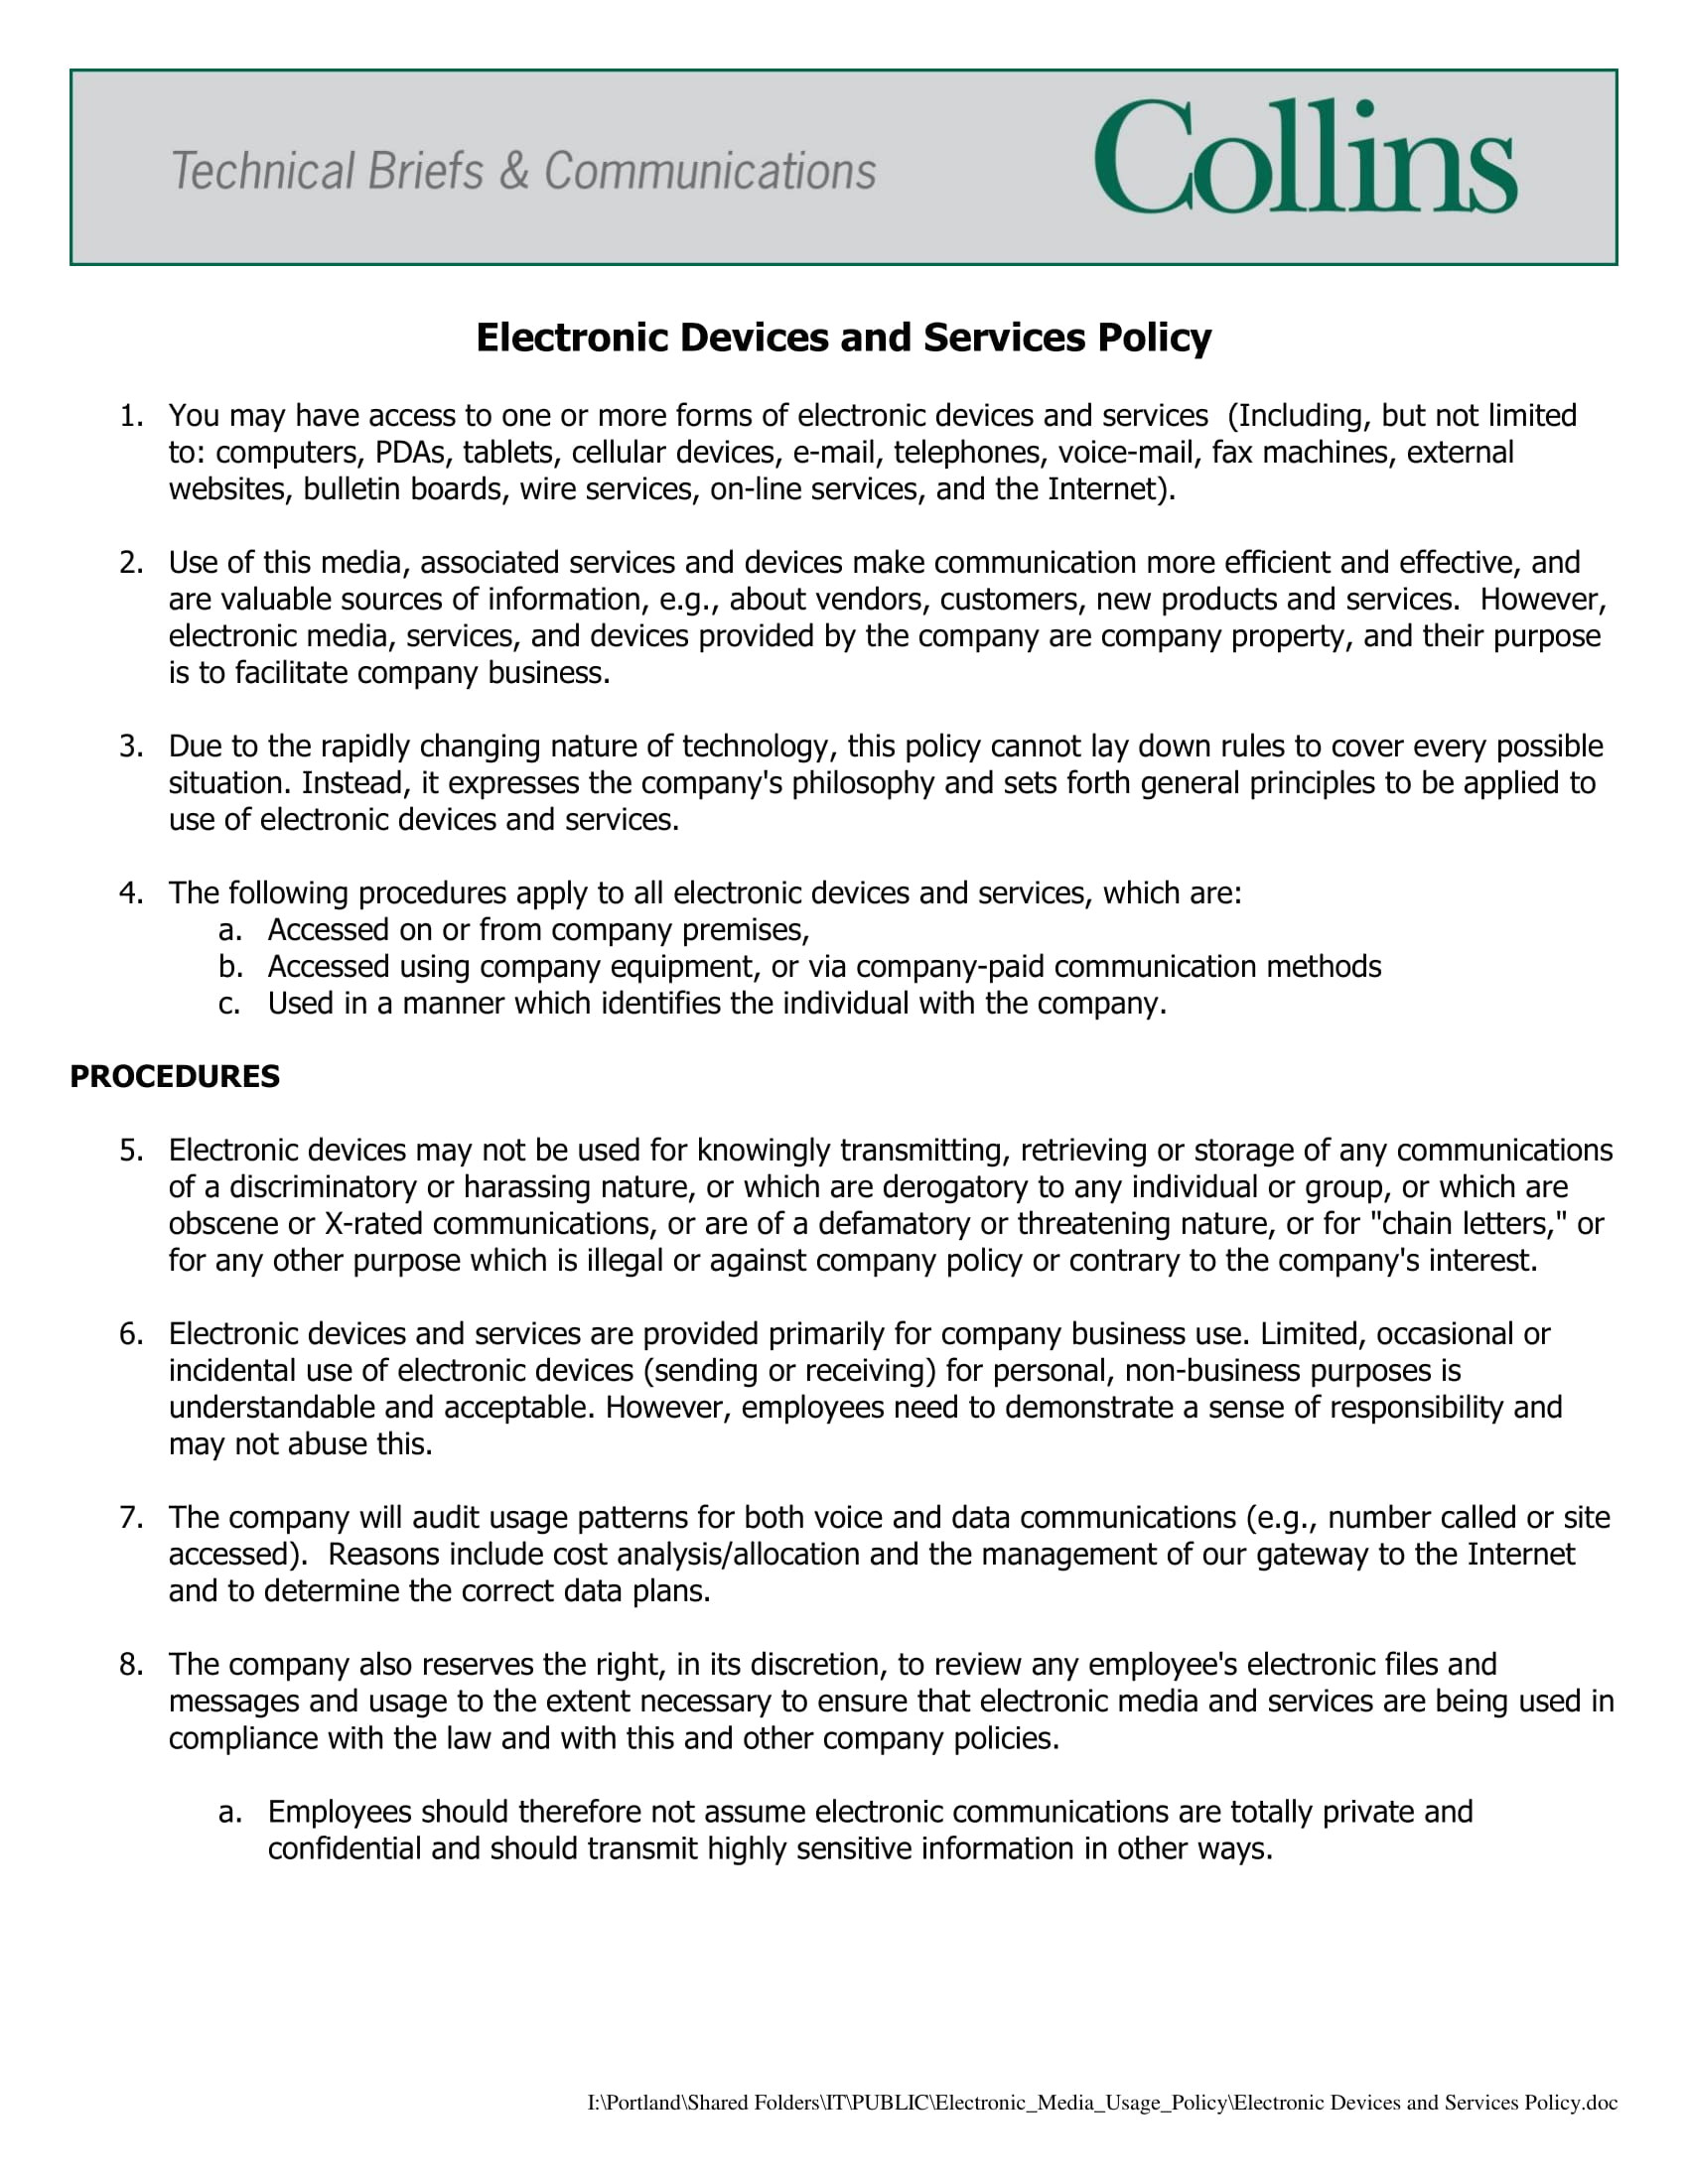 employee email policy